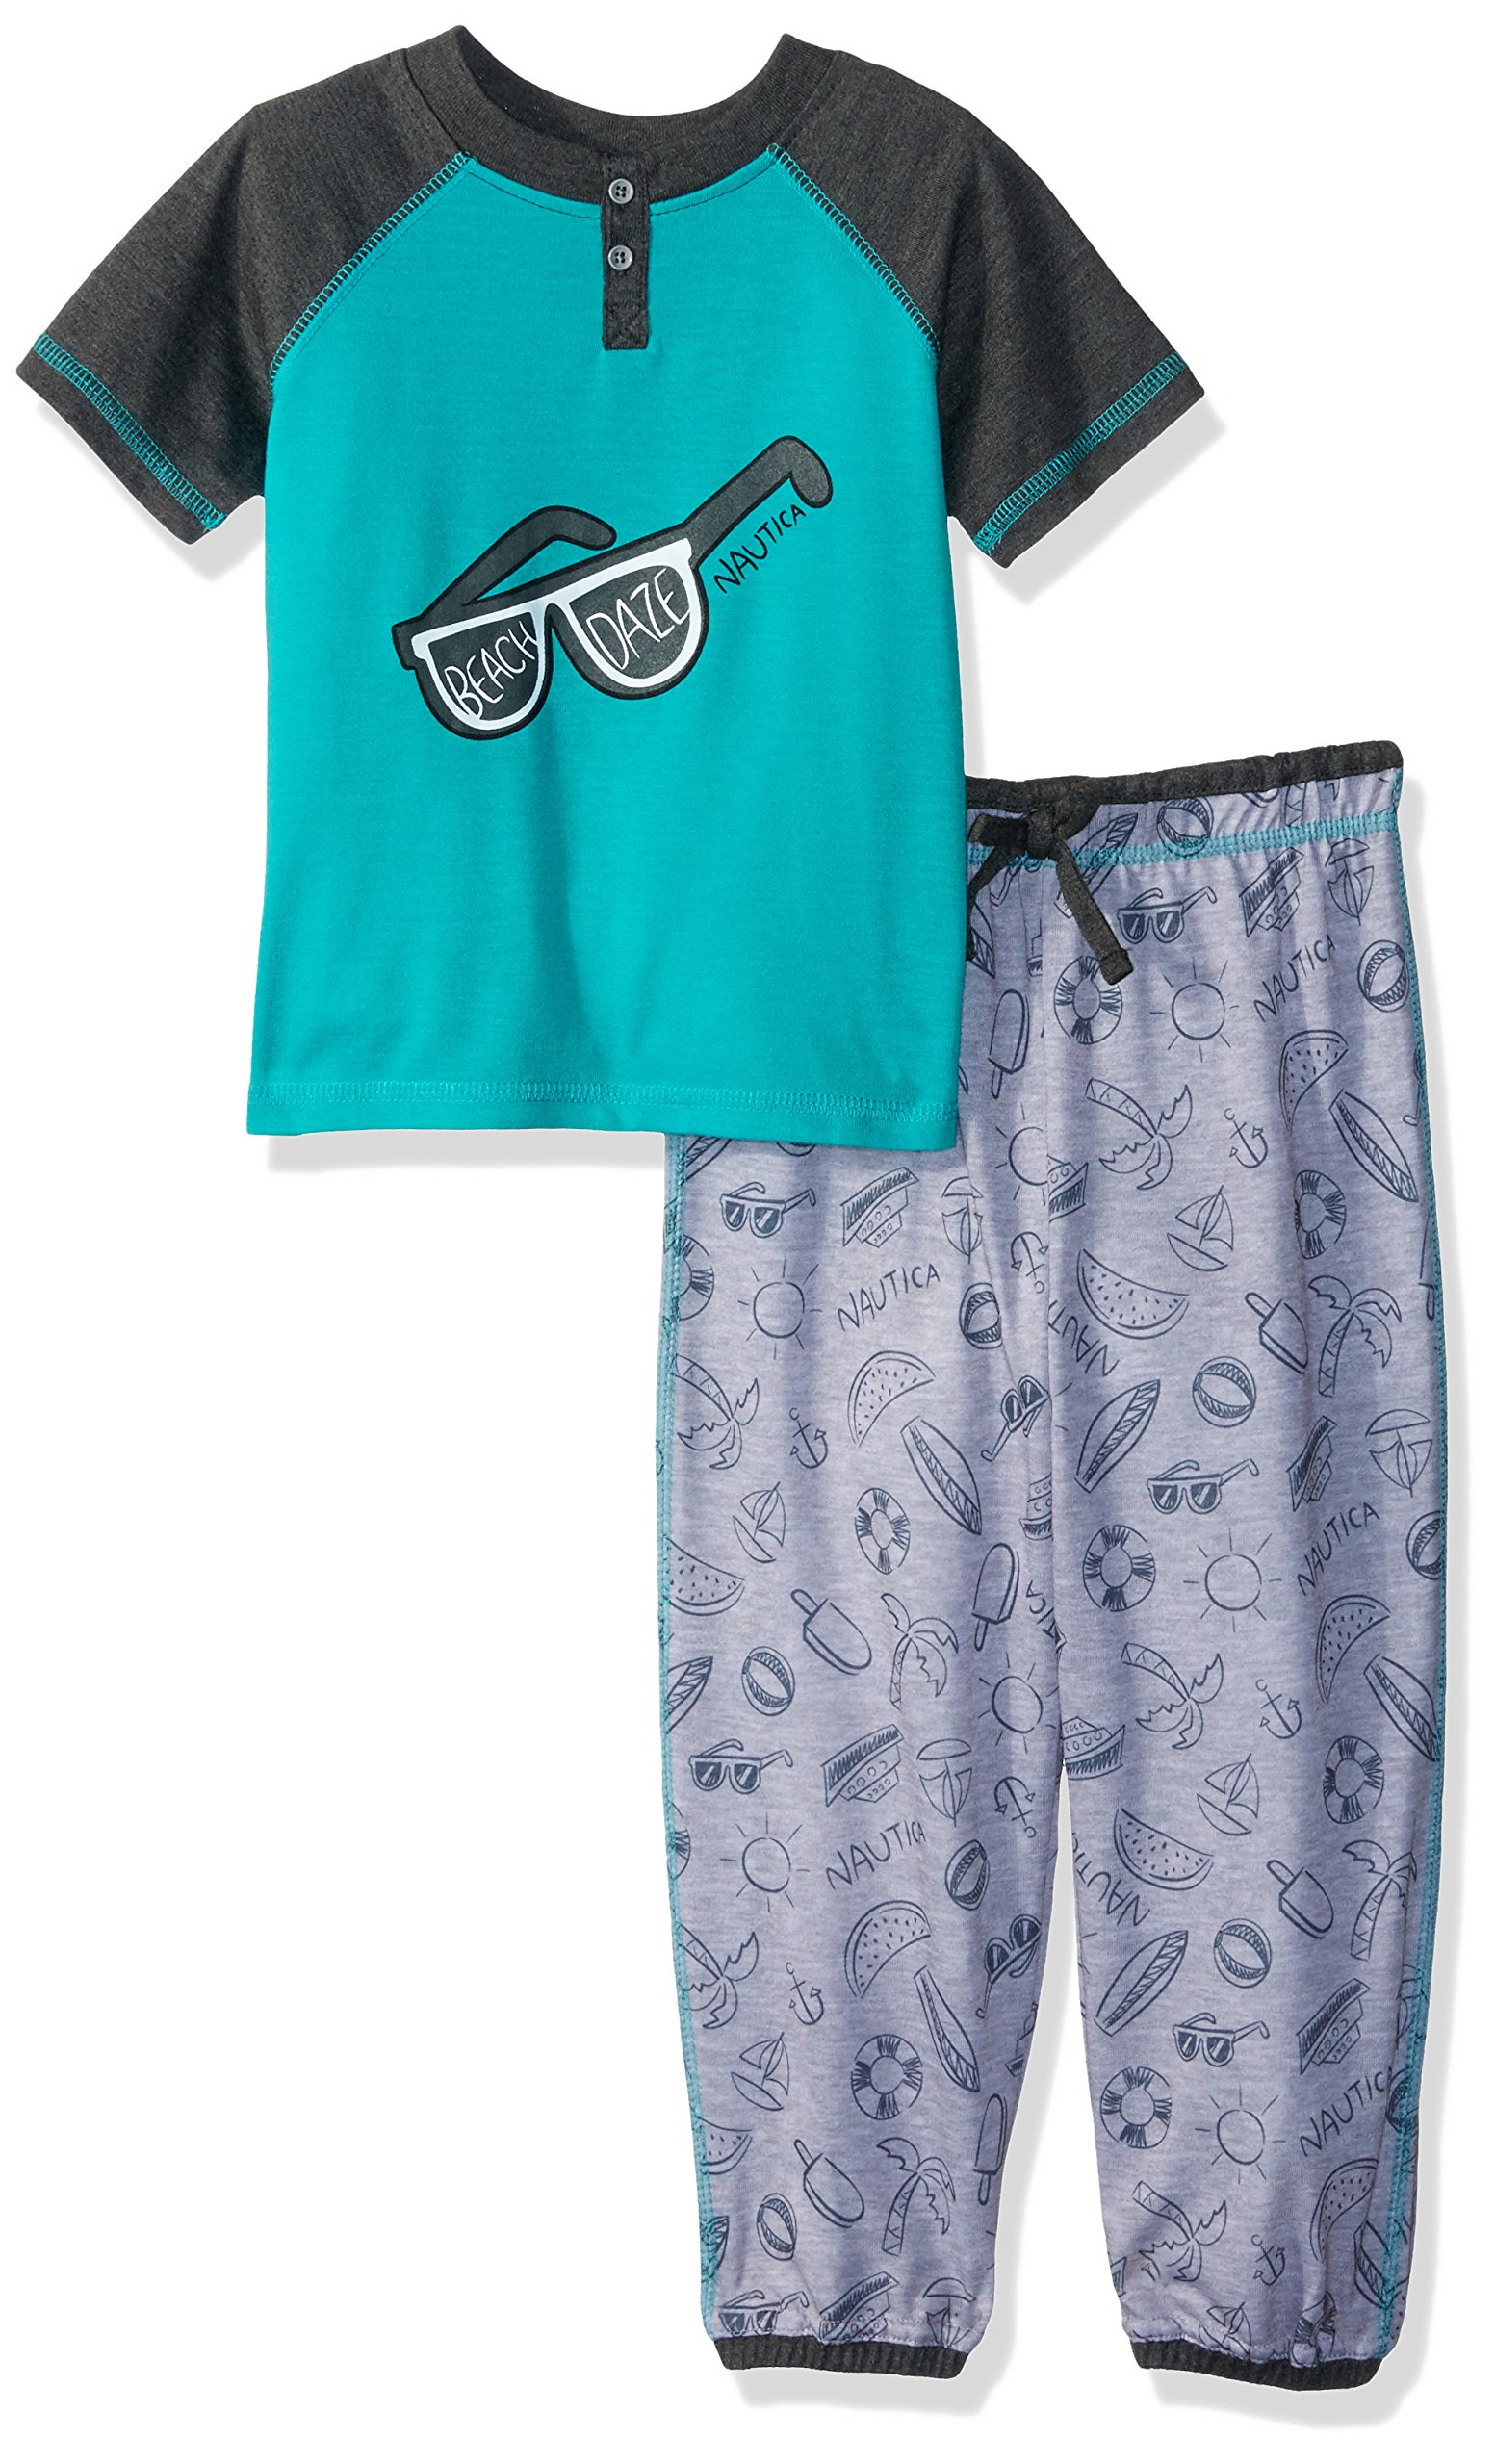 Nautica Toddler Boys' Sunglasses 2 Piece Pajama Set, Teal, 4T